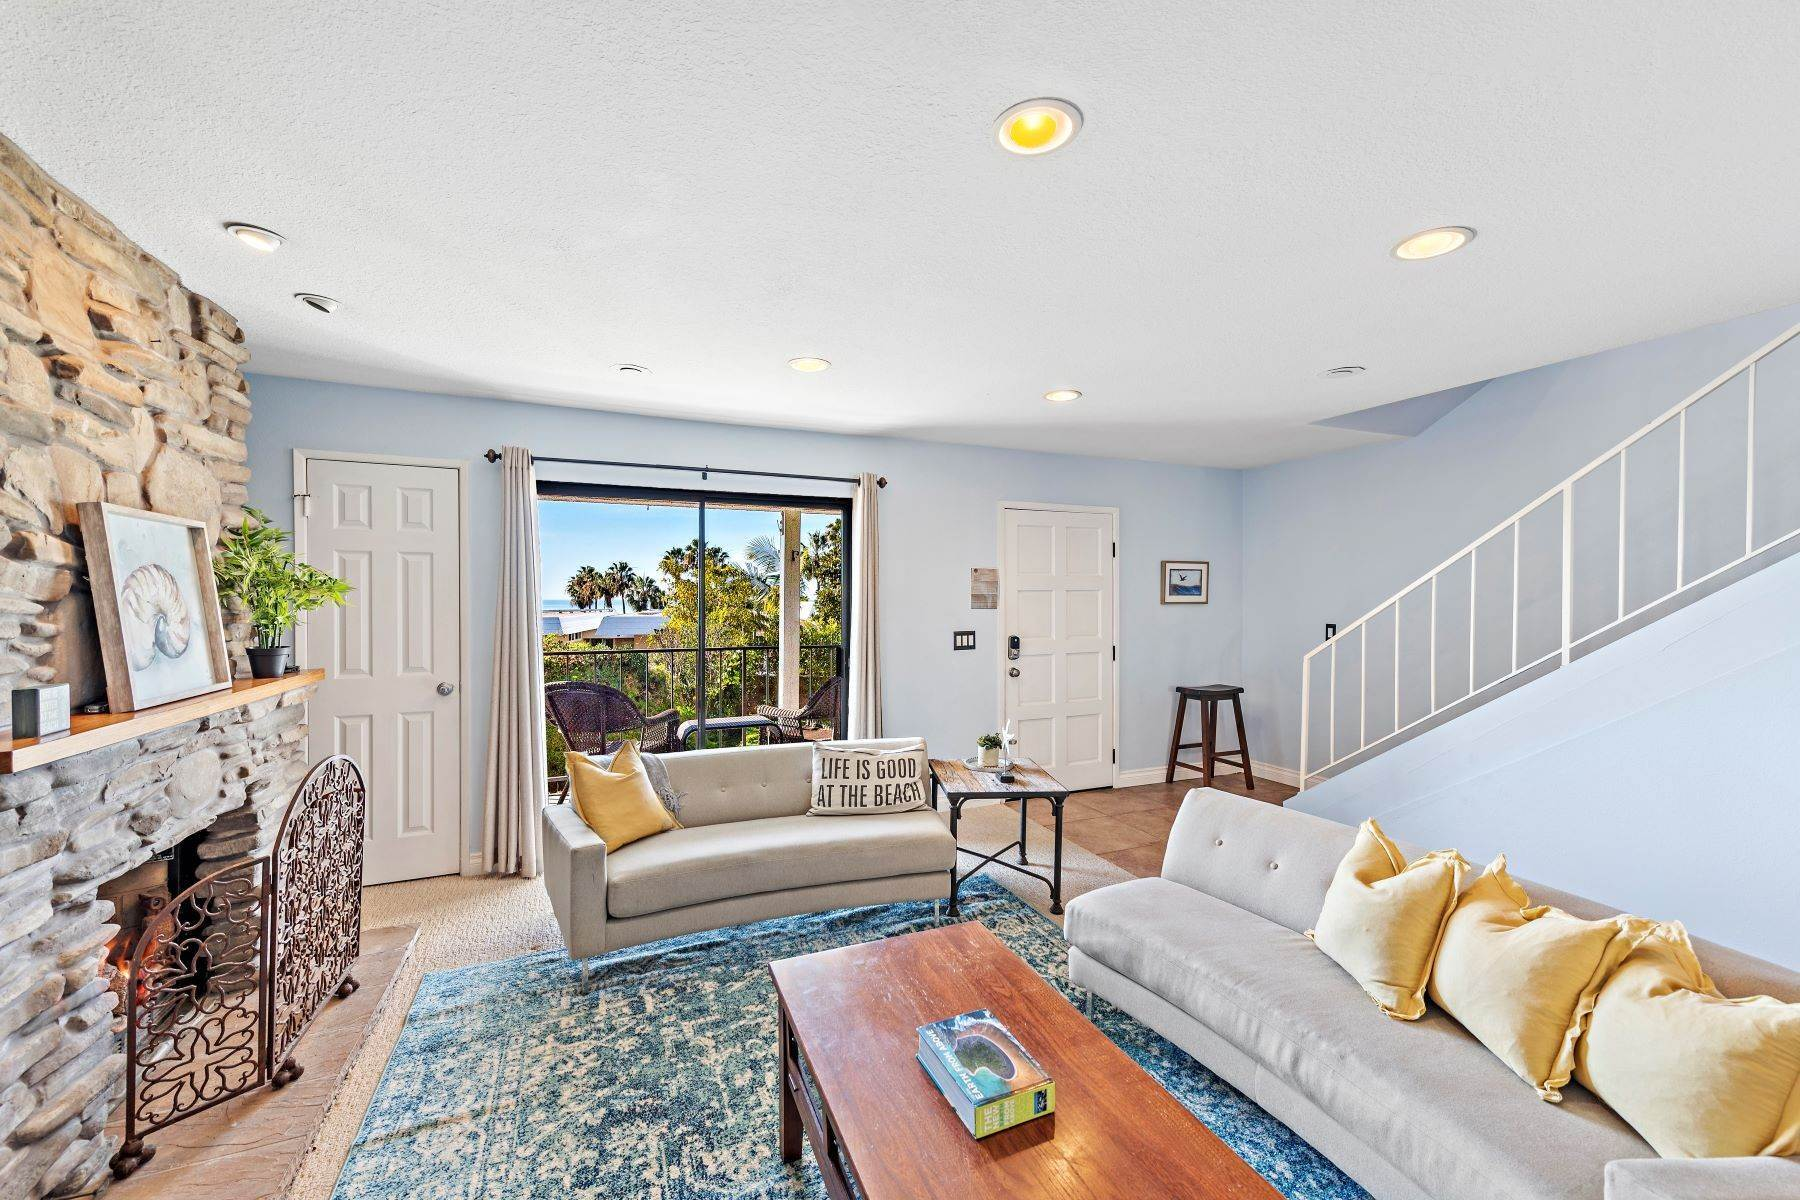 18. Condominiums for Sale at 321 Acebo Lane Unit #C, San Clemente, CA 92672 321 Acebo Lane, Unit #C San Clemente, California 92672 United States